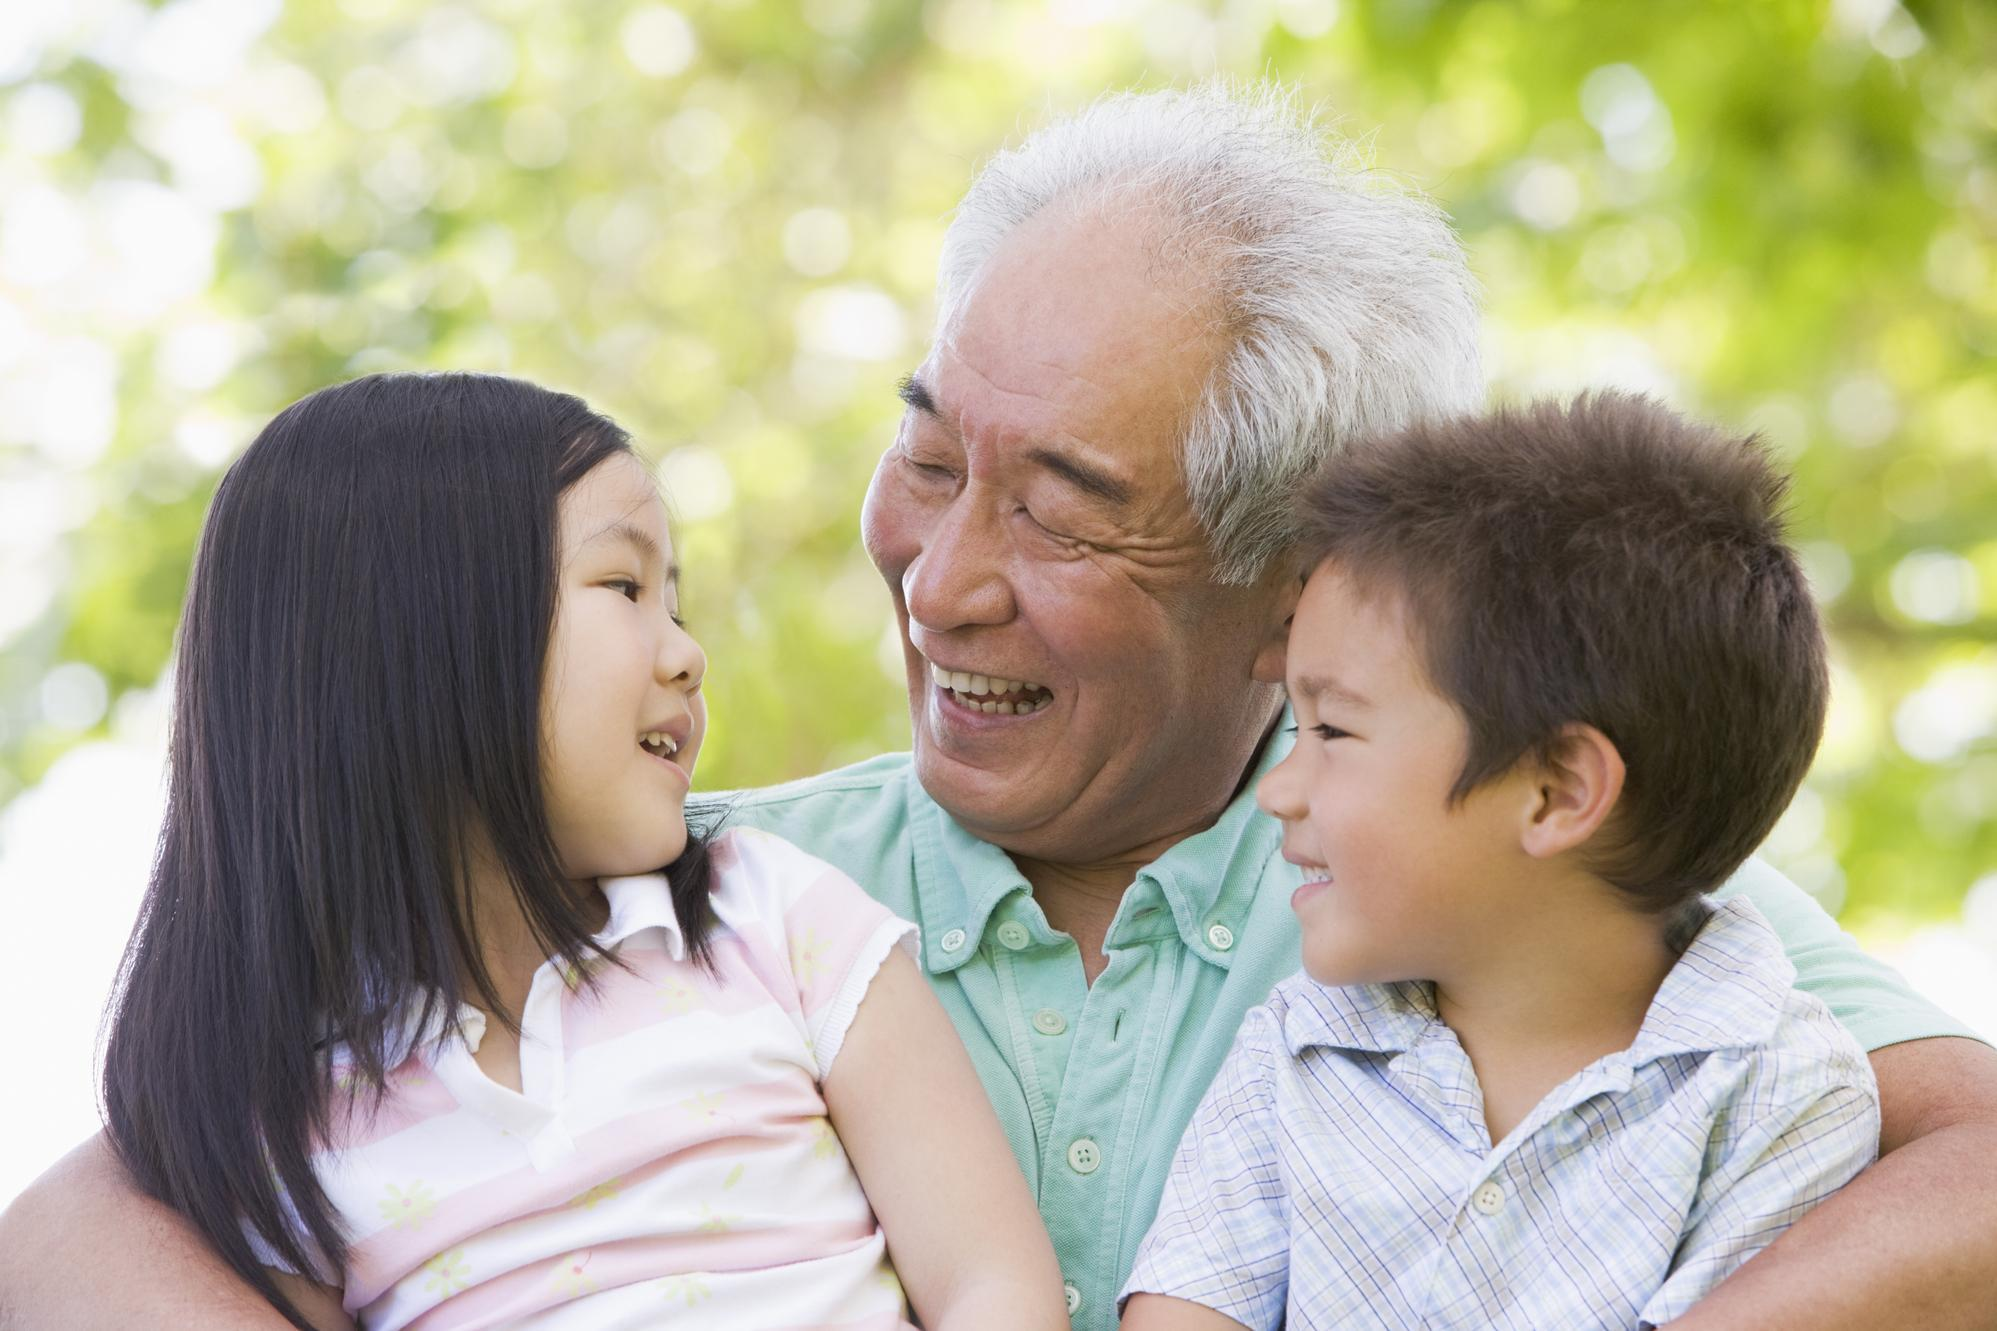 Grandfather laughing and visiting with grandchildren